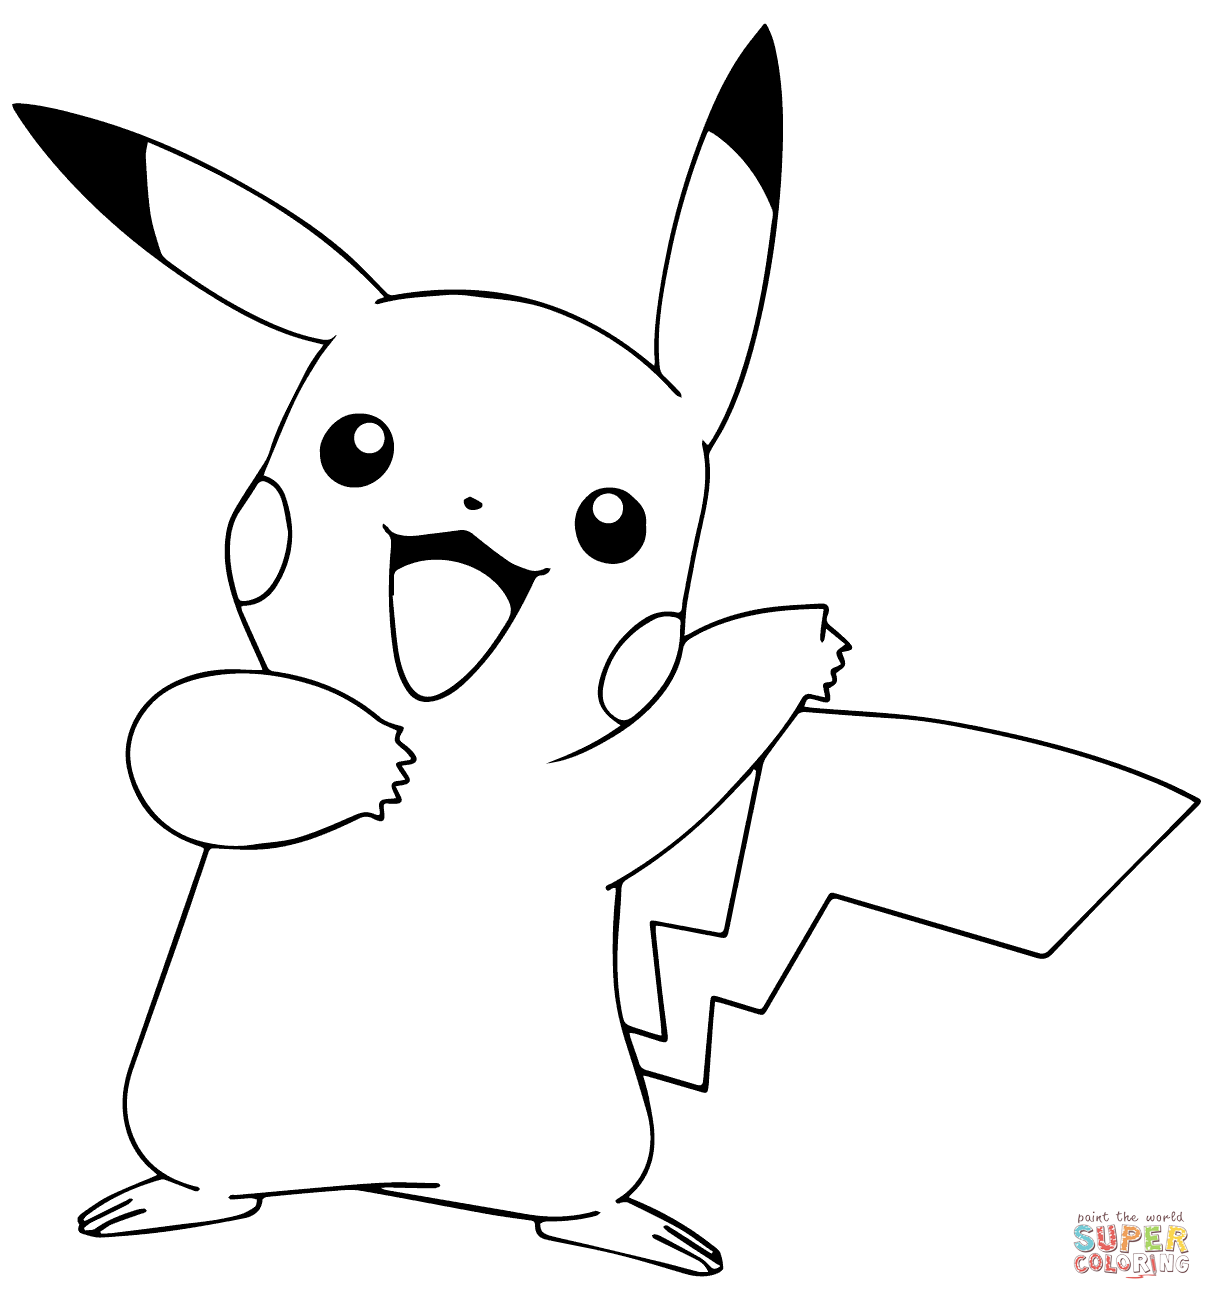 Pikachu From Pokemon Go Pikachu Coloring Page Pokemon Coloring Pokemon Coloring Sheets